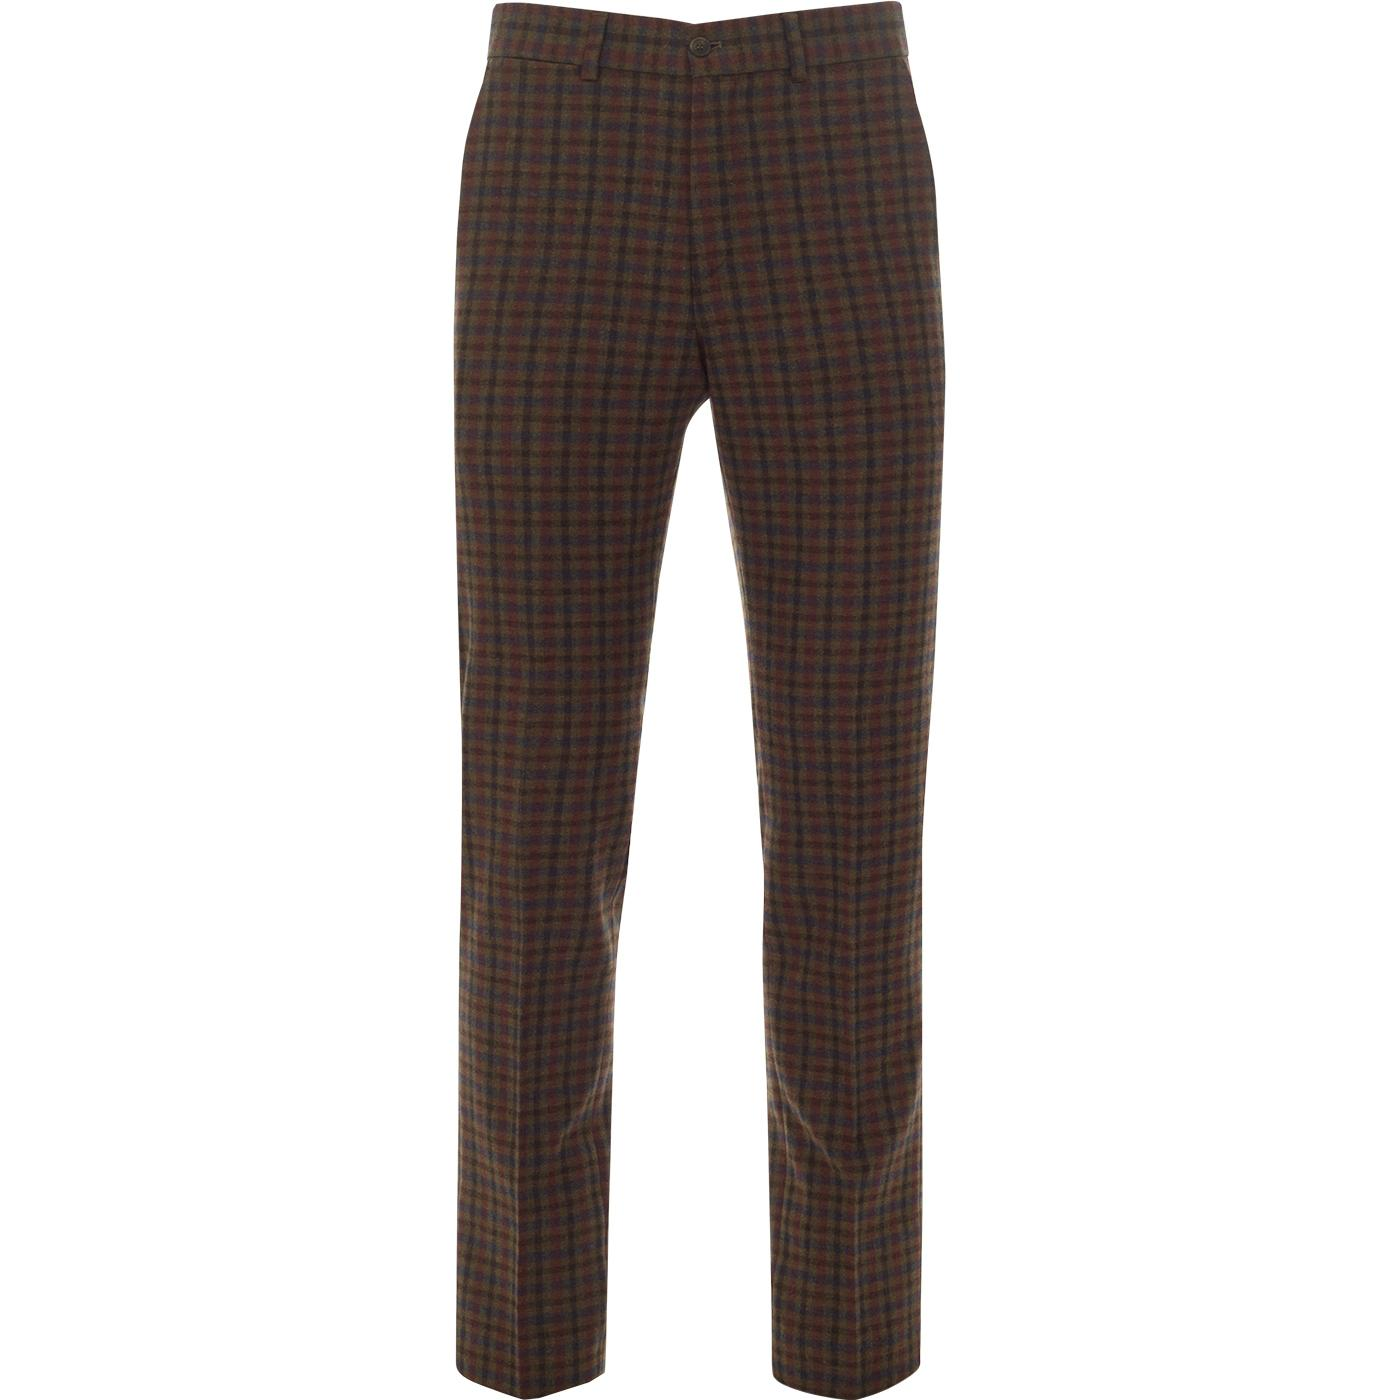 GIBSON LONDON 60s Mod Gingham Check Trousers (Tan)